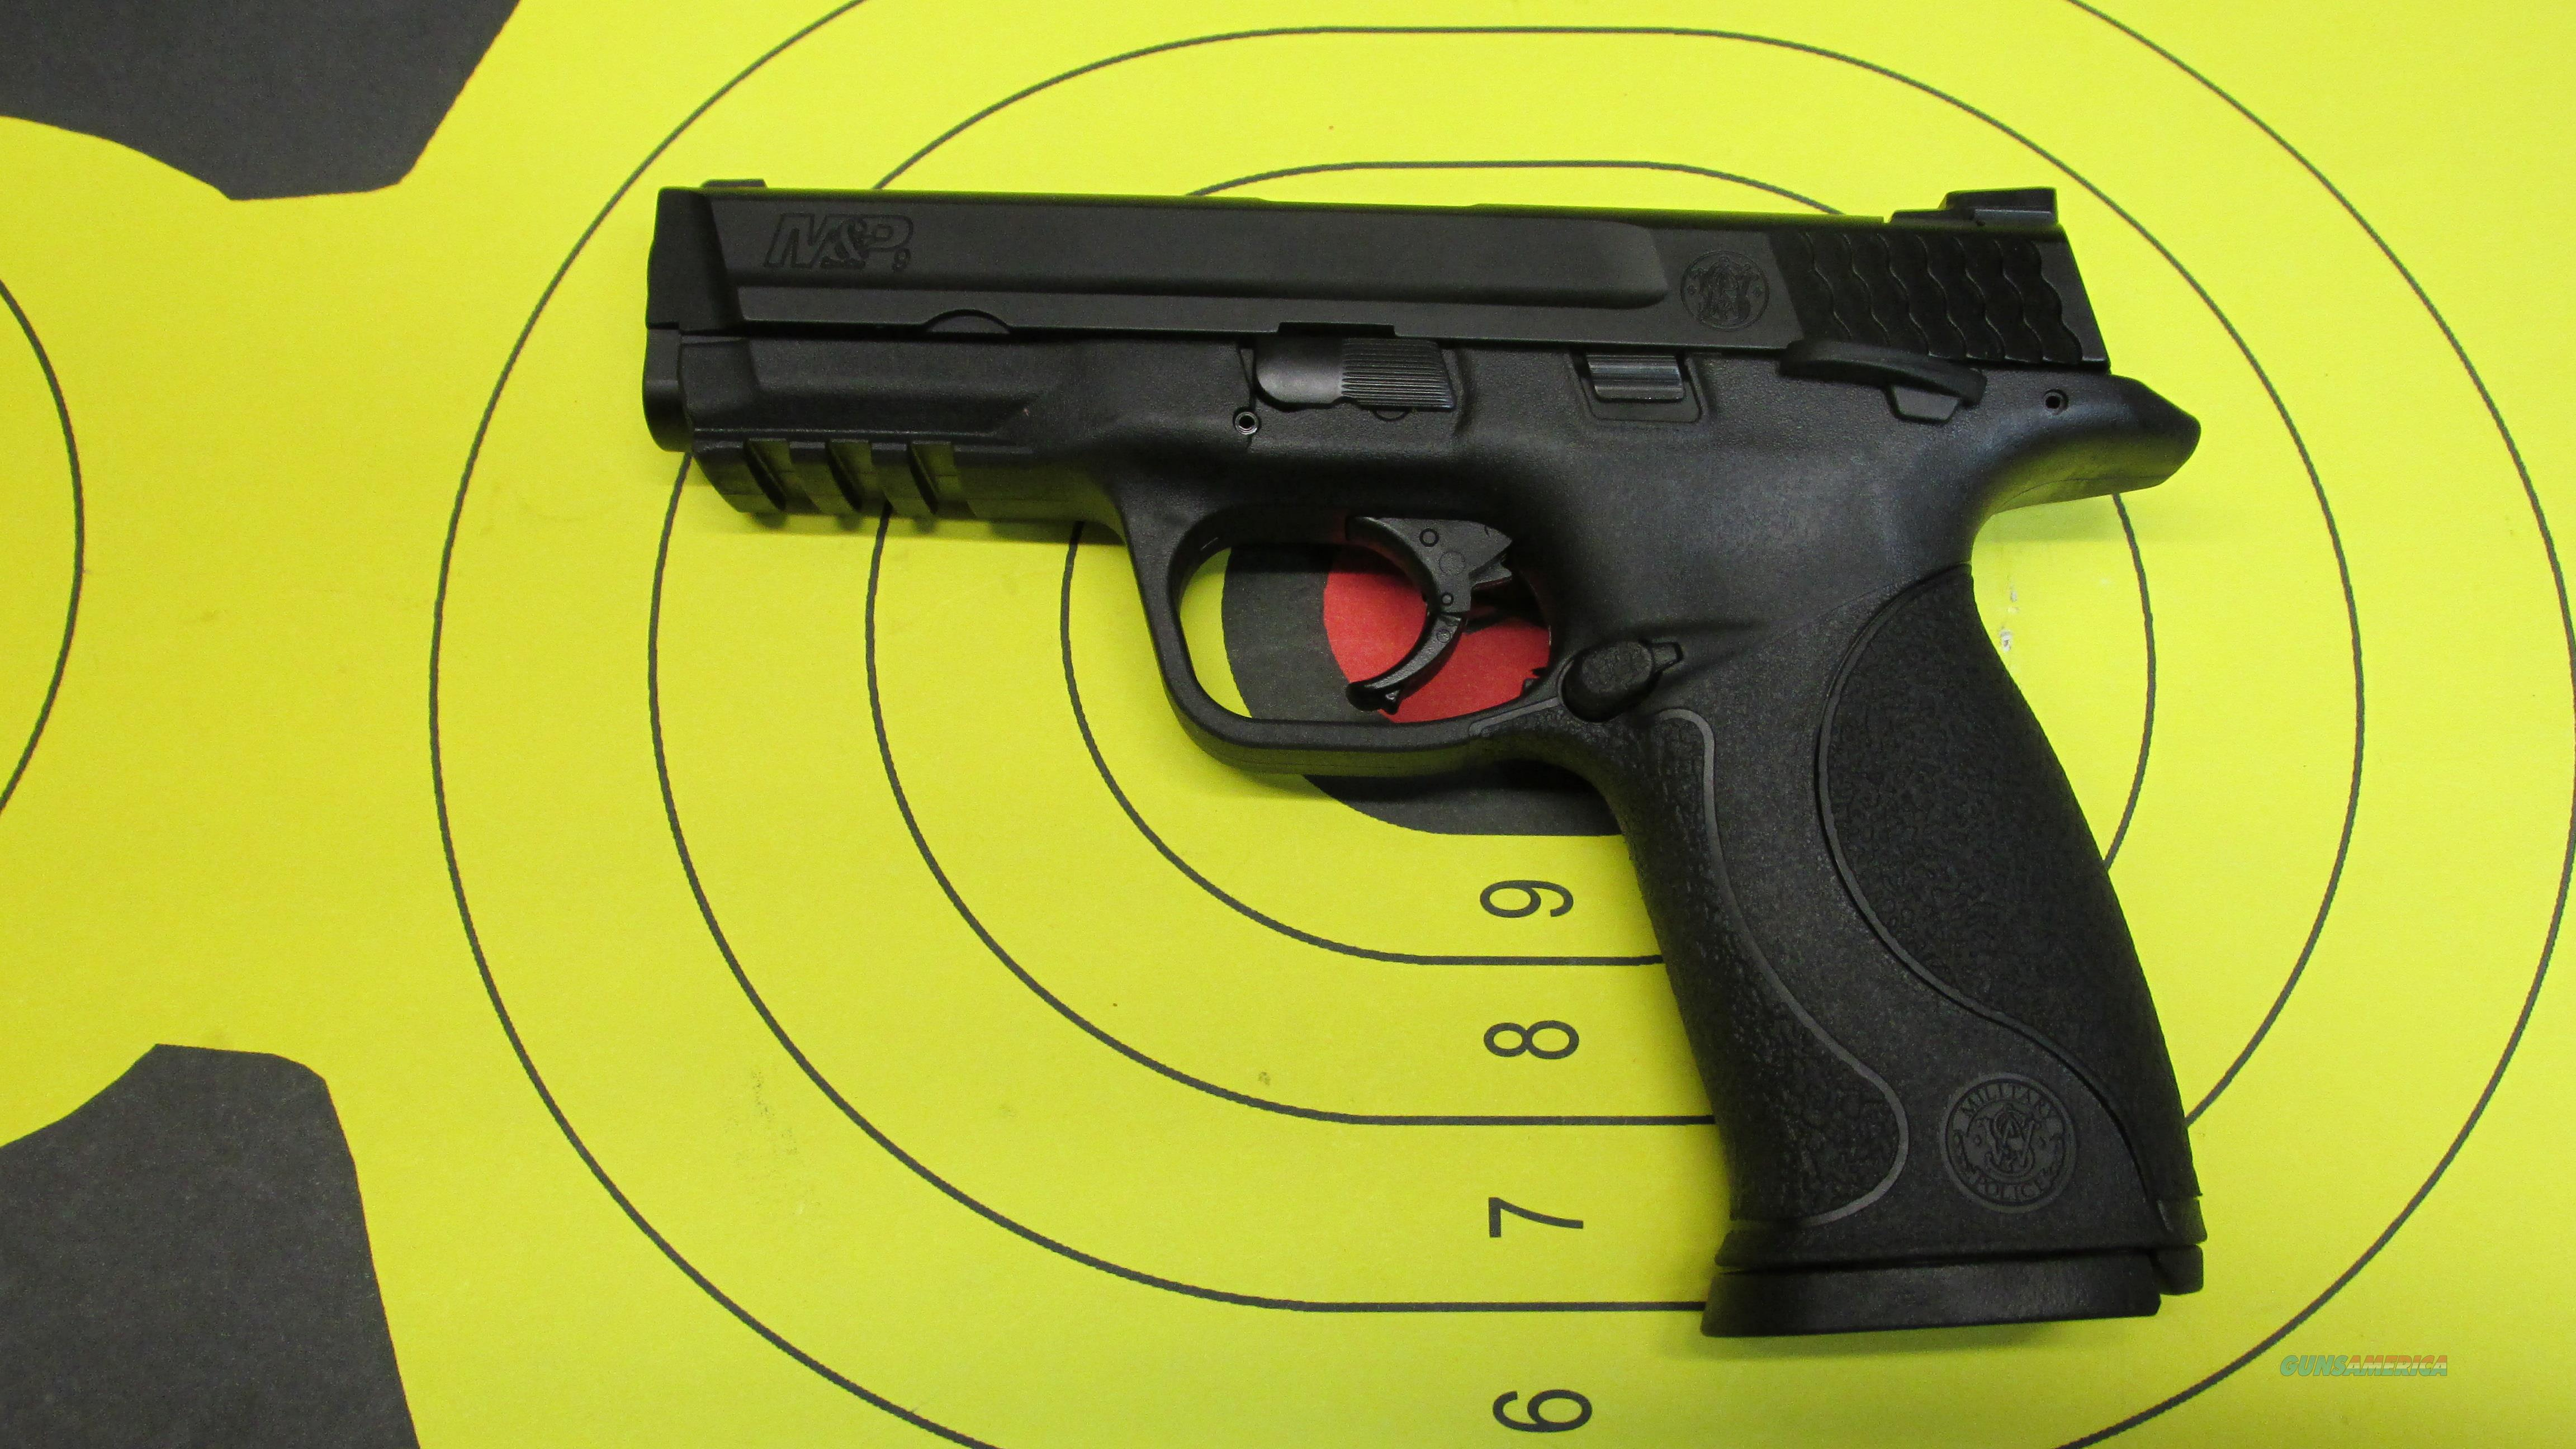 "SMITH & WESSON M&P 9, 9MM PISTOL BLACK, 2 17 ROUND MAGAZINES AND 4.25"" BARREL   Guns > Pistols > Smith & Wesson Pistols - Autos > Polymer Frame"